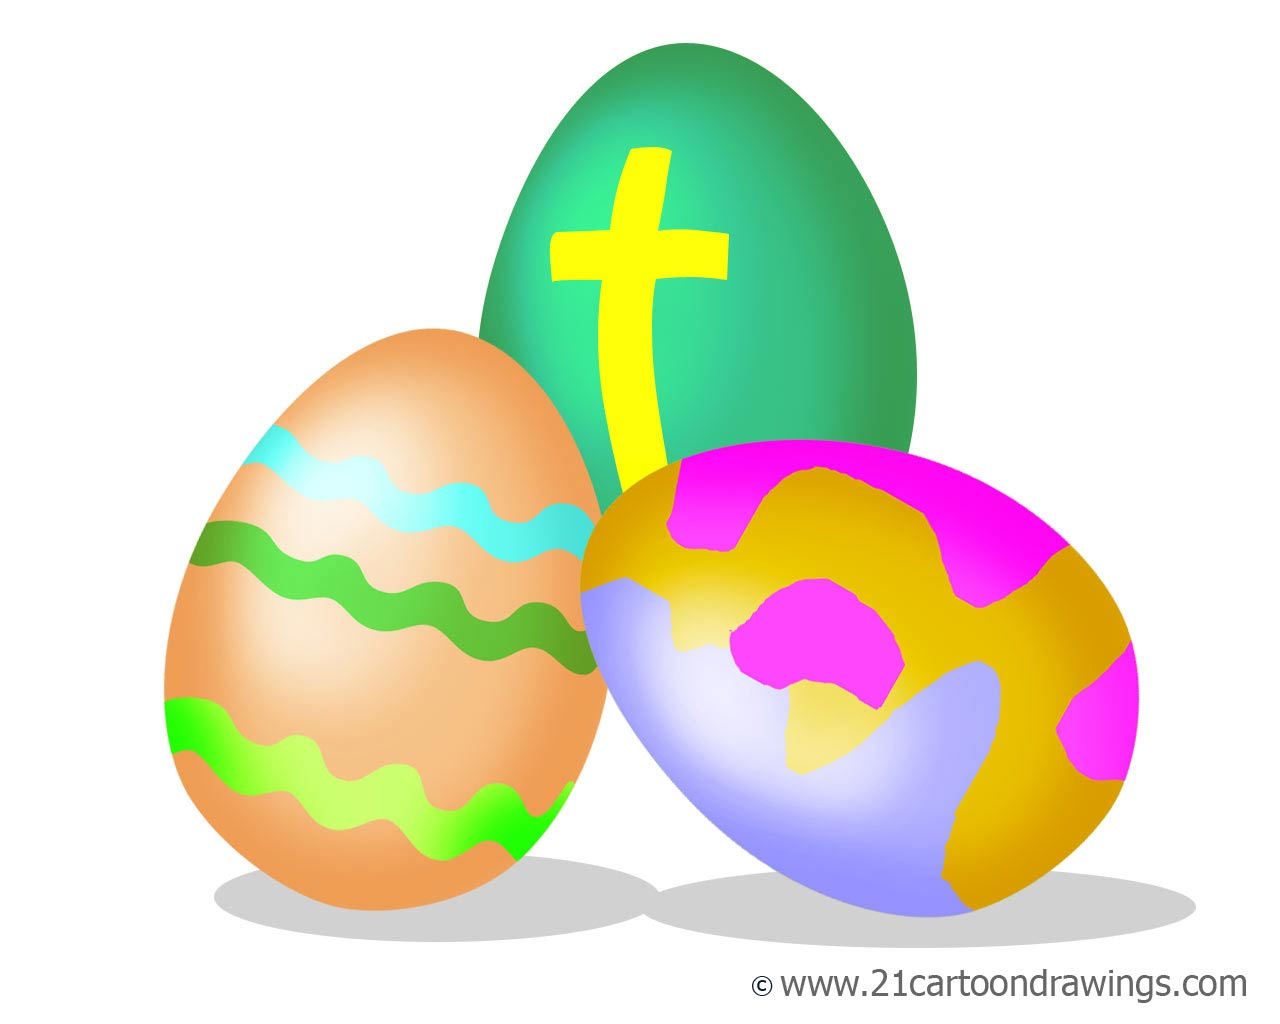 Easter egg hunt clipart border clipart black and white library Religious Easter Clipart & Religious Easter Clip Art Images ... clipart black and white library